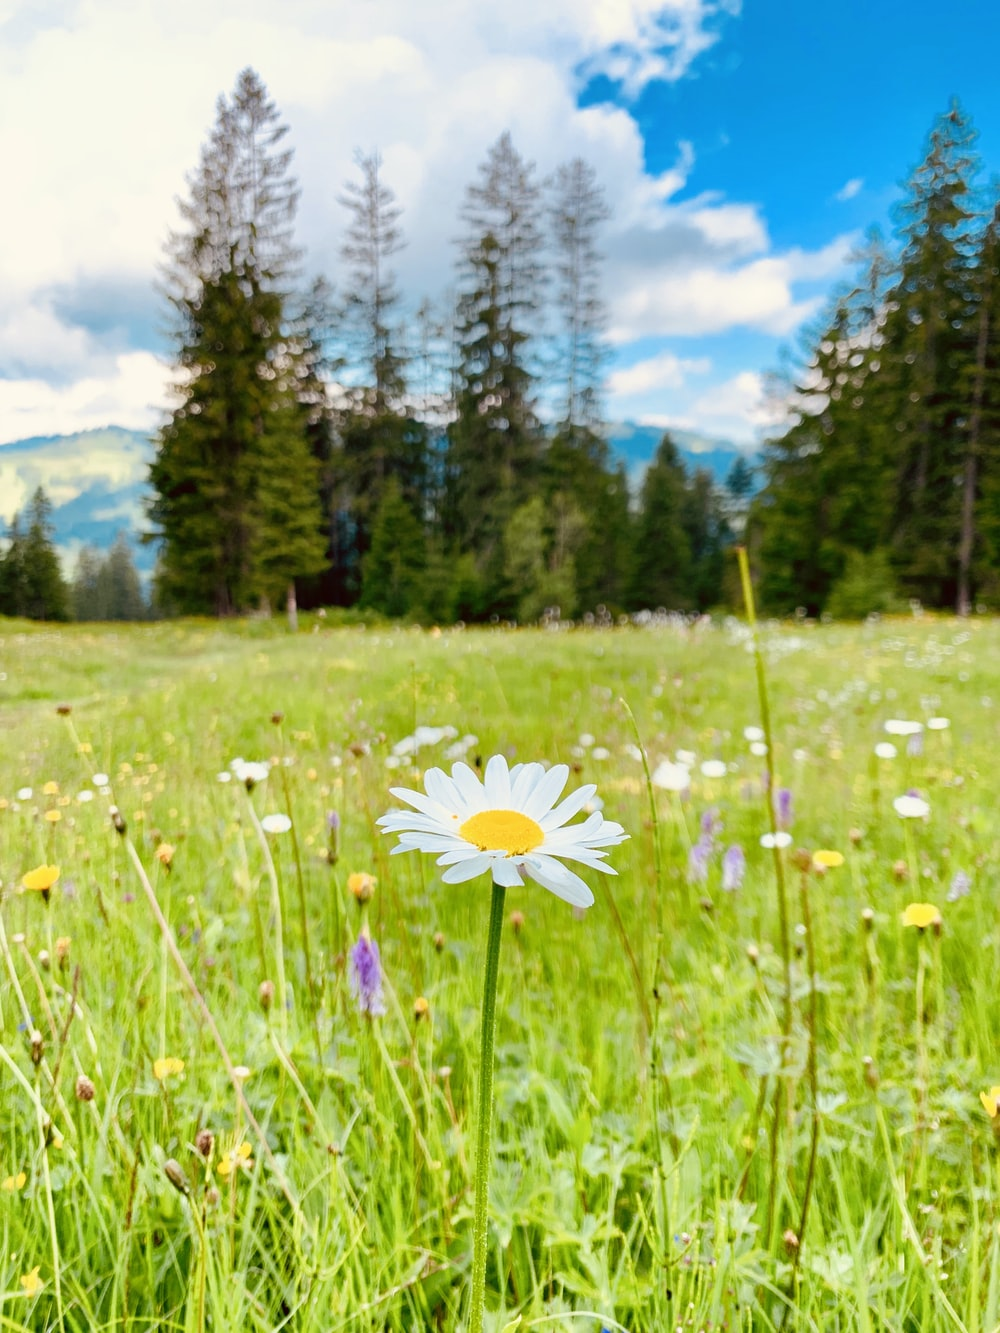 blooming white and yellow daisy flower field